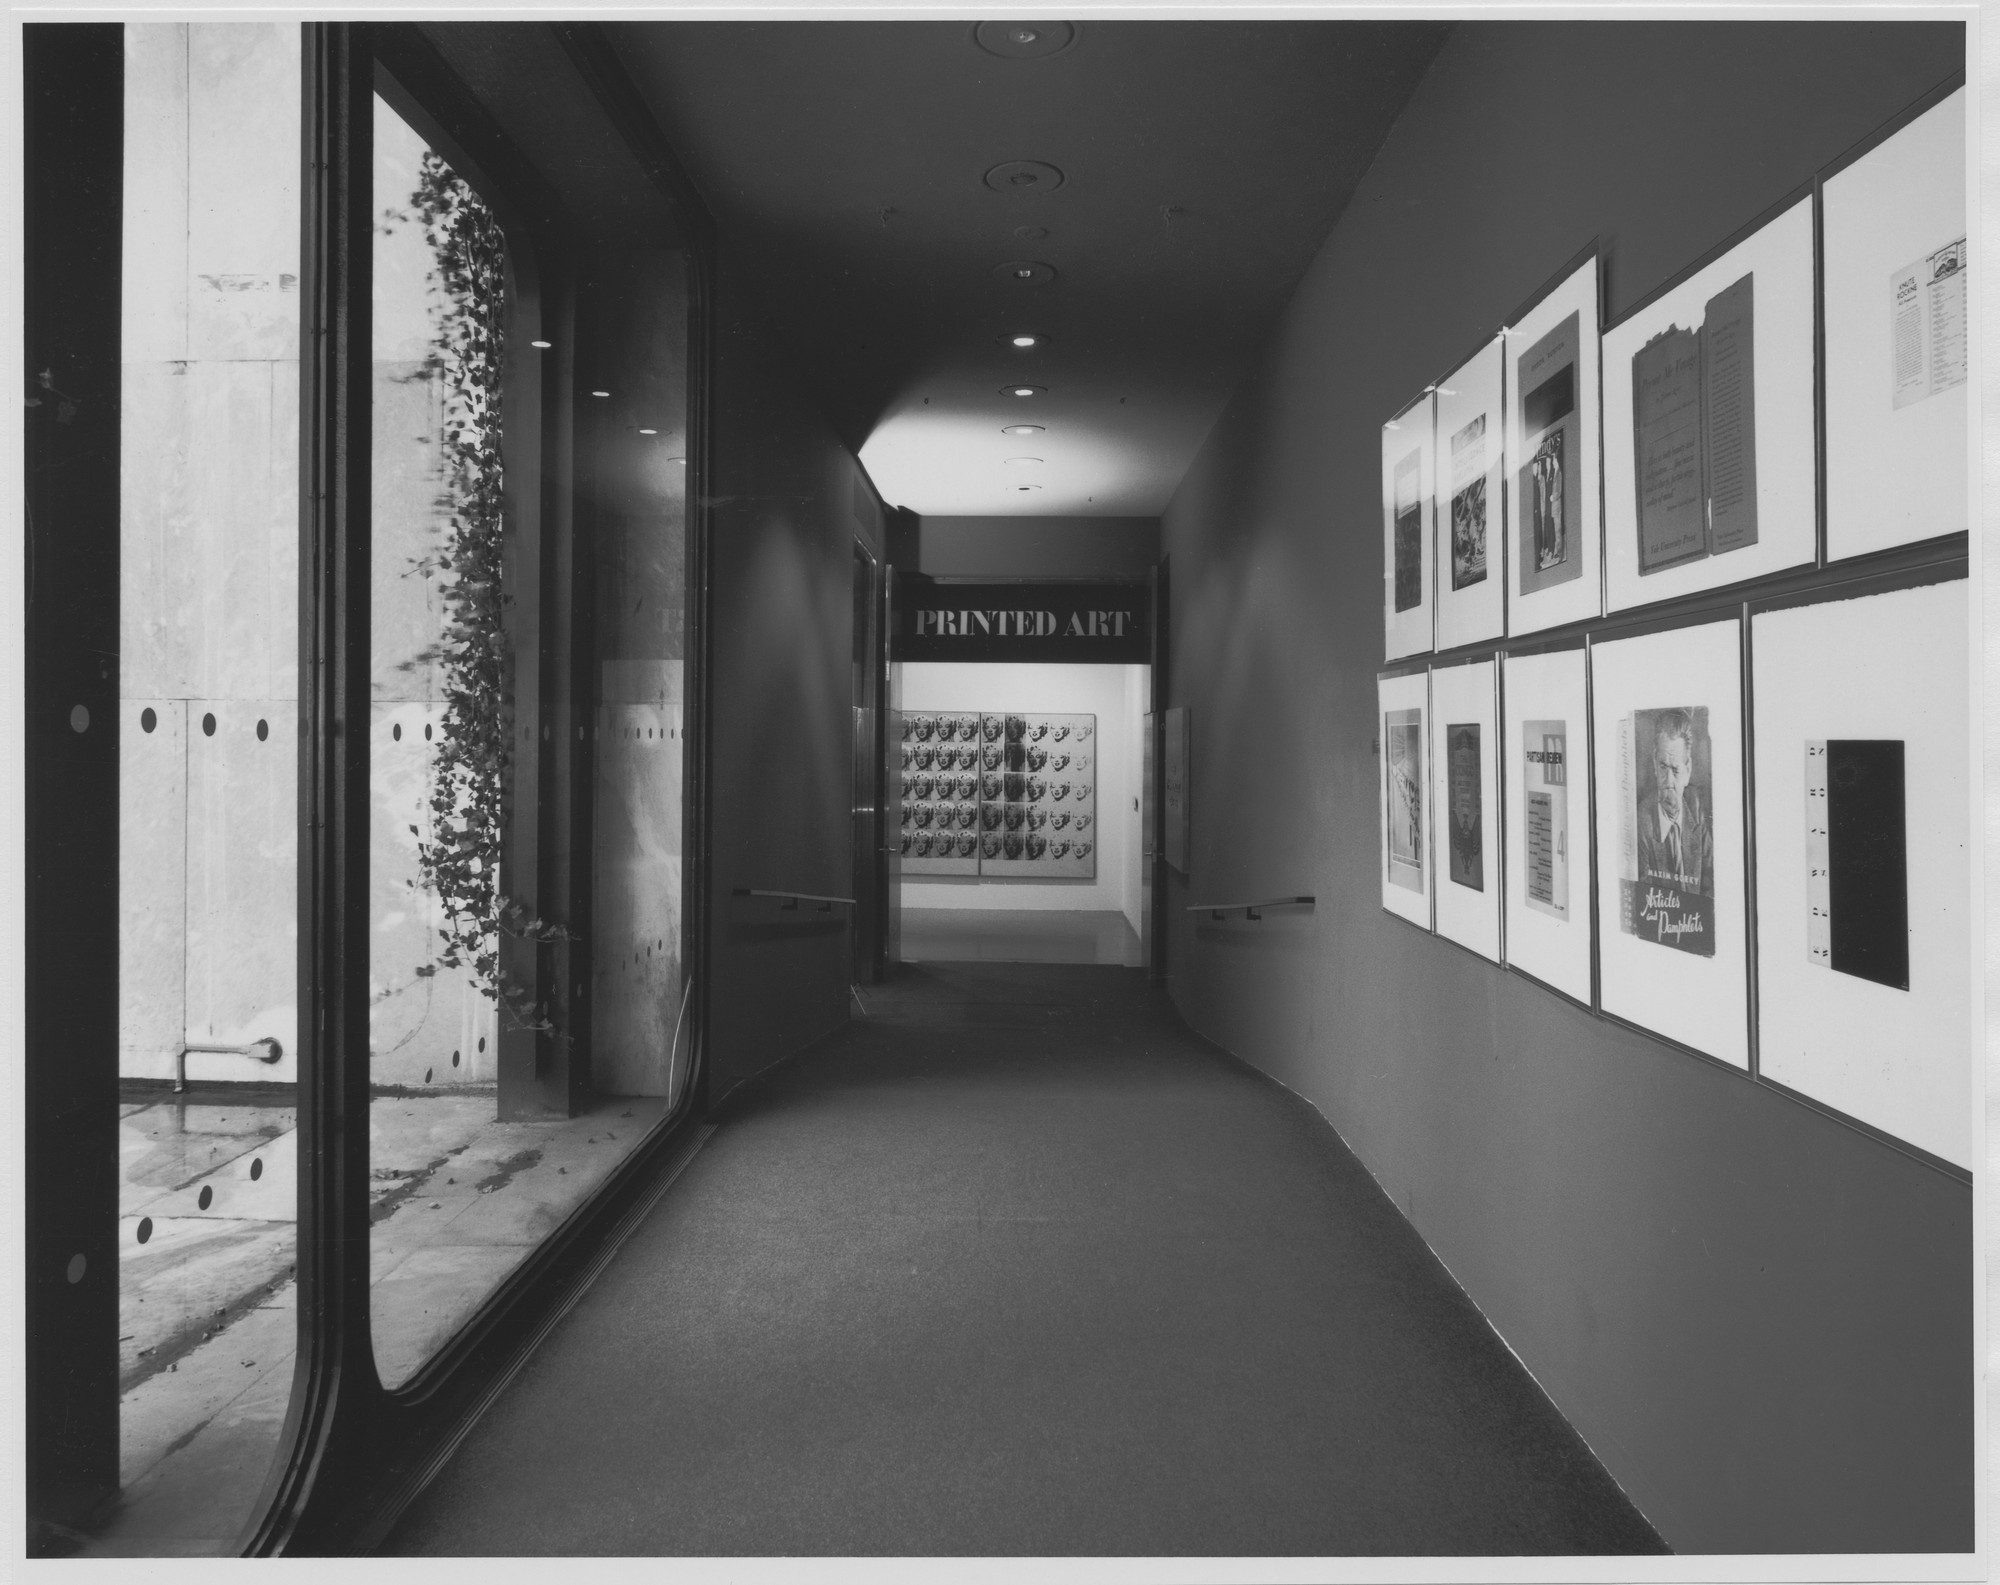 "Installation view of the exhibition, ""Printed Art Since 1965"" February 13, 1980–April 1, 1980. Photographic Archive. The Museum of Modern Art Archives, New York. IN1287.1. Photograph by Mali Olatunji."